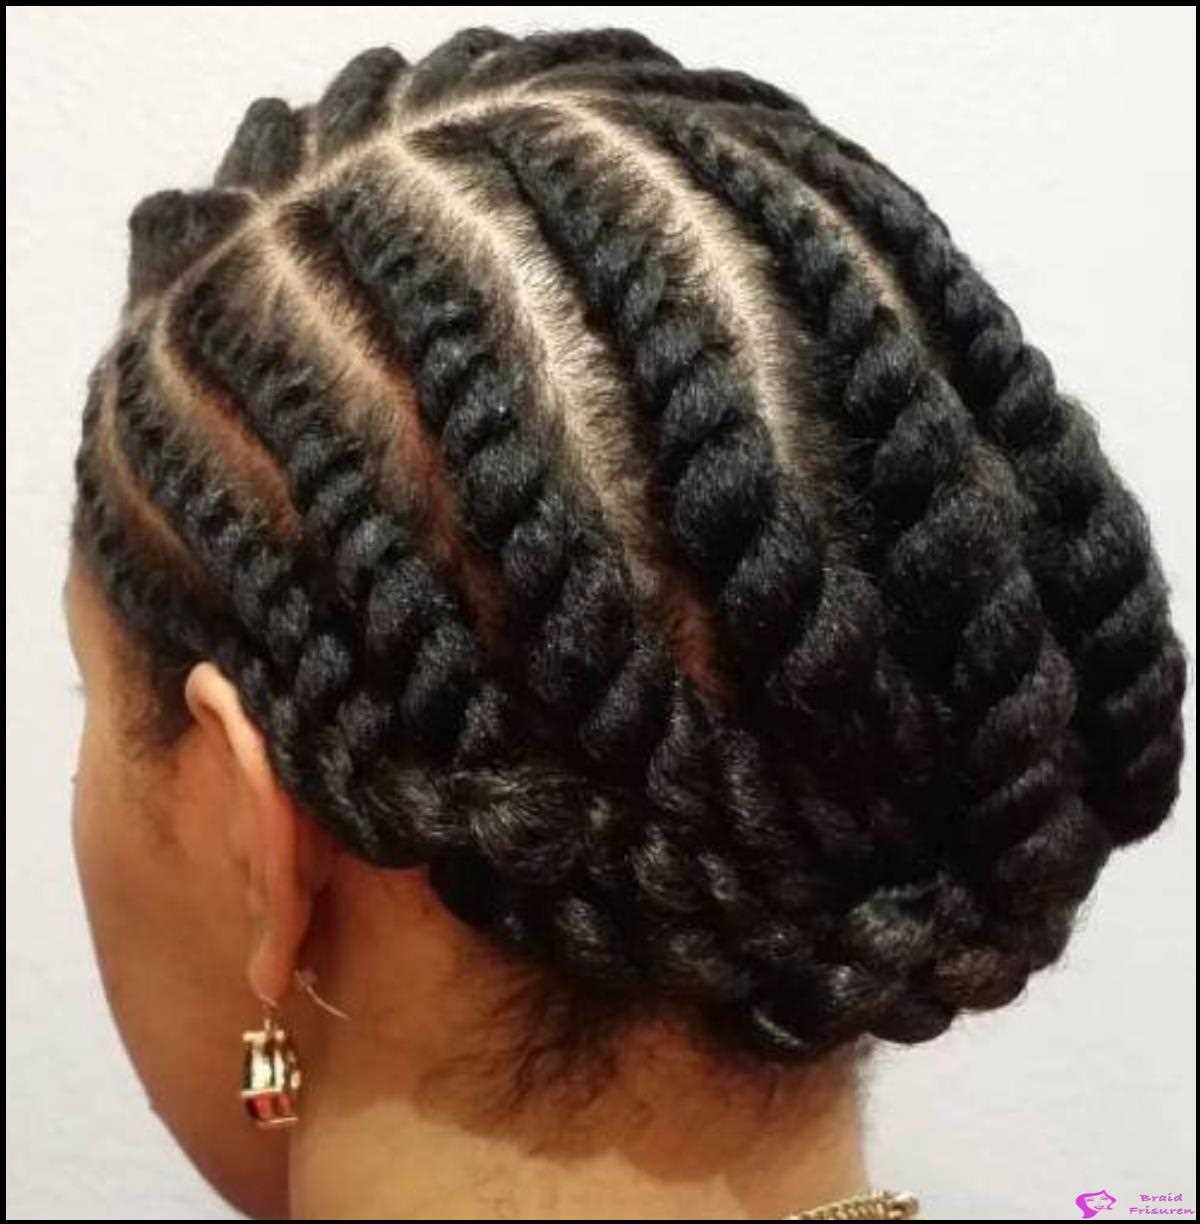 28: Twisted Rows Updo